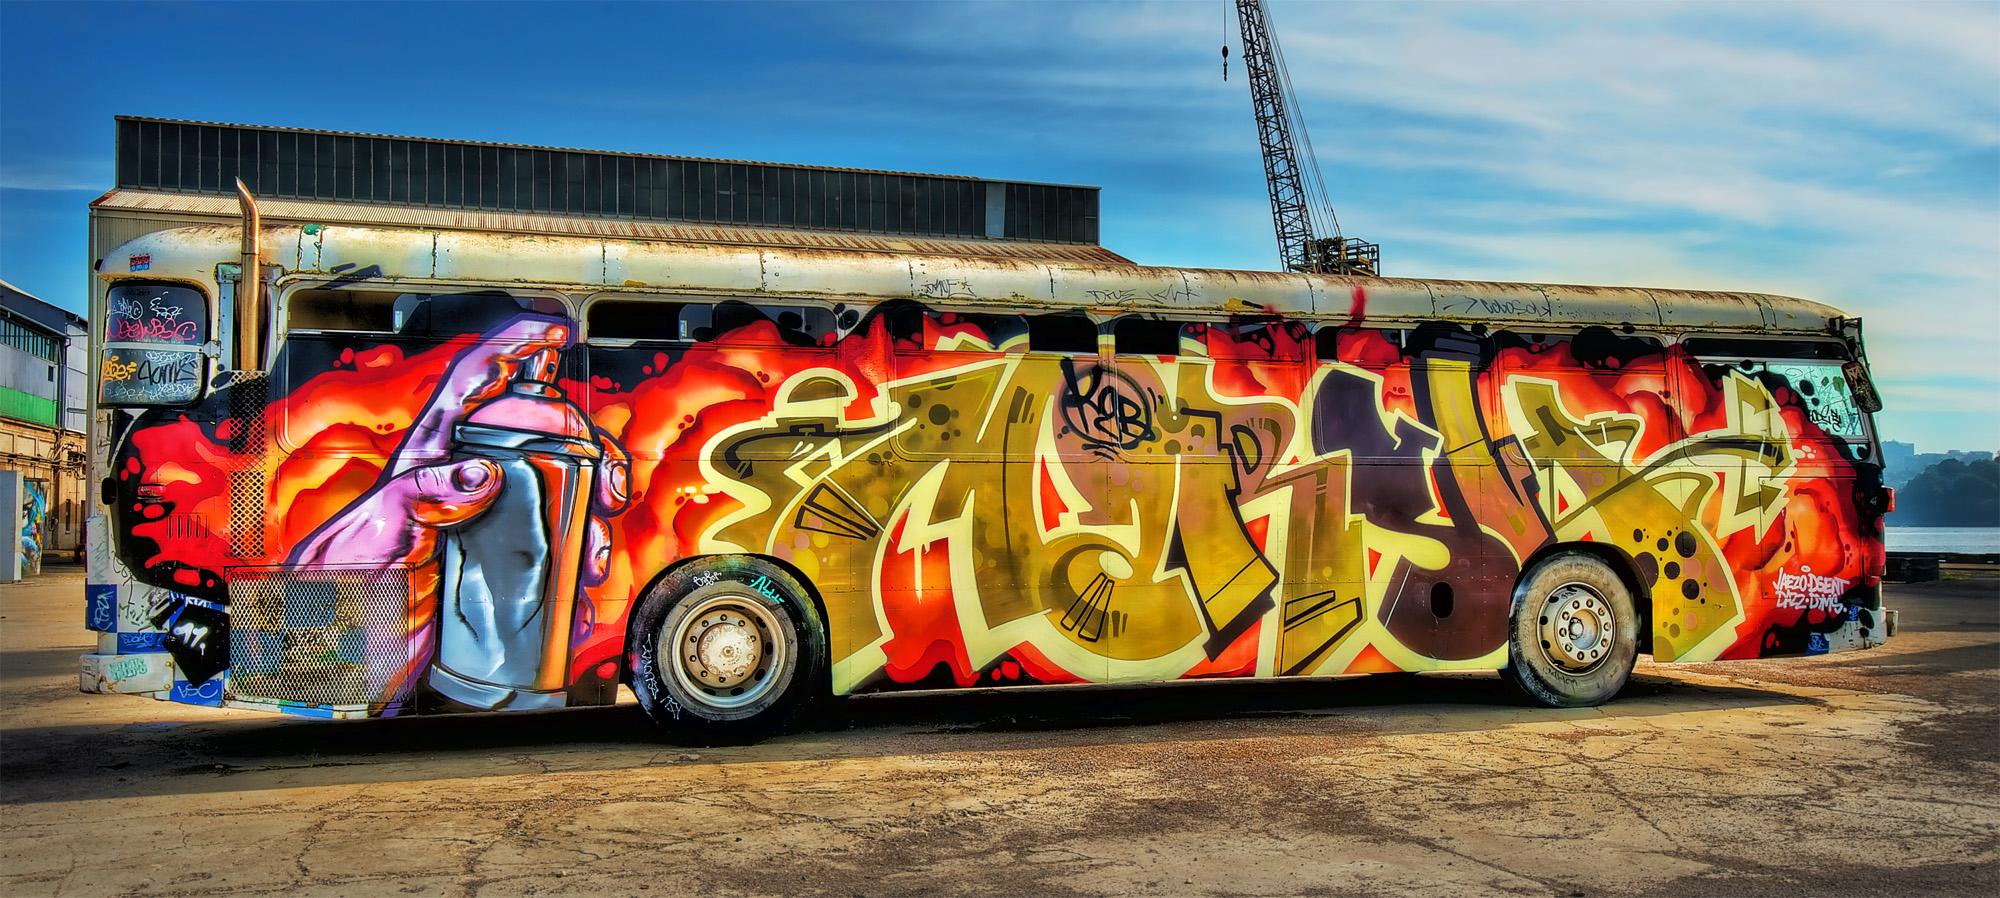 Graffiti Art Bus